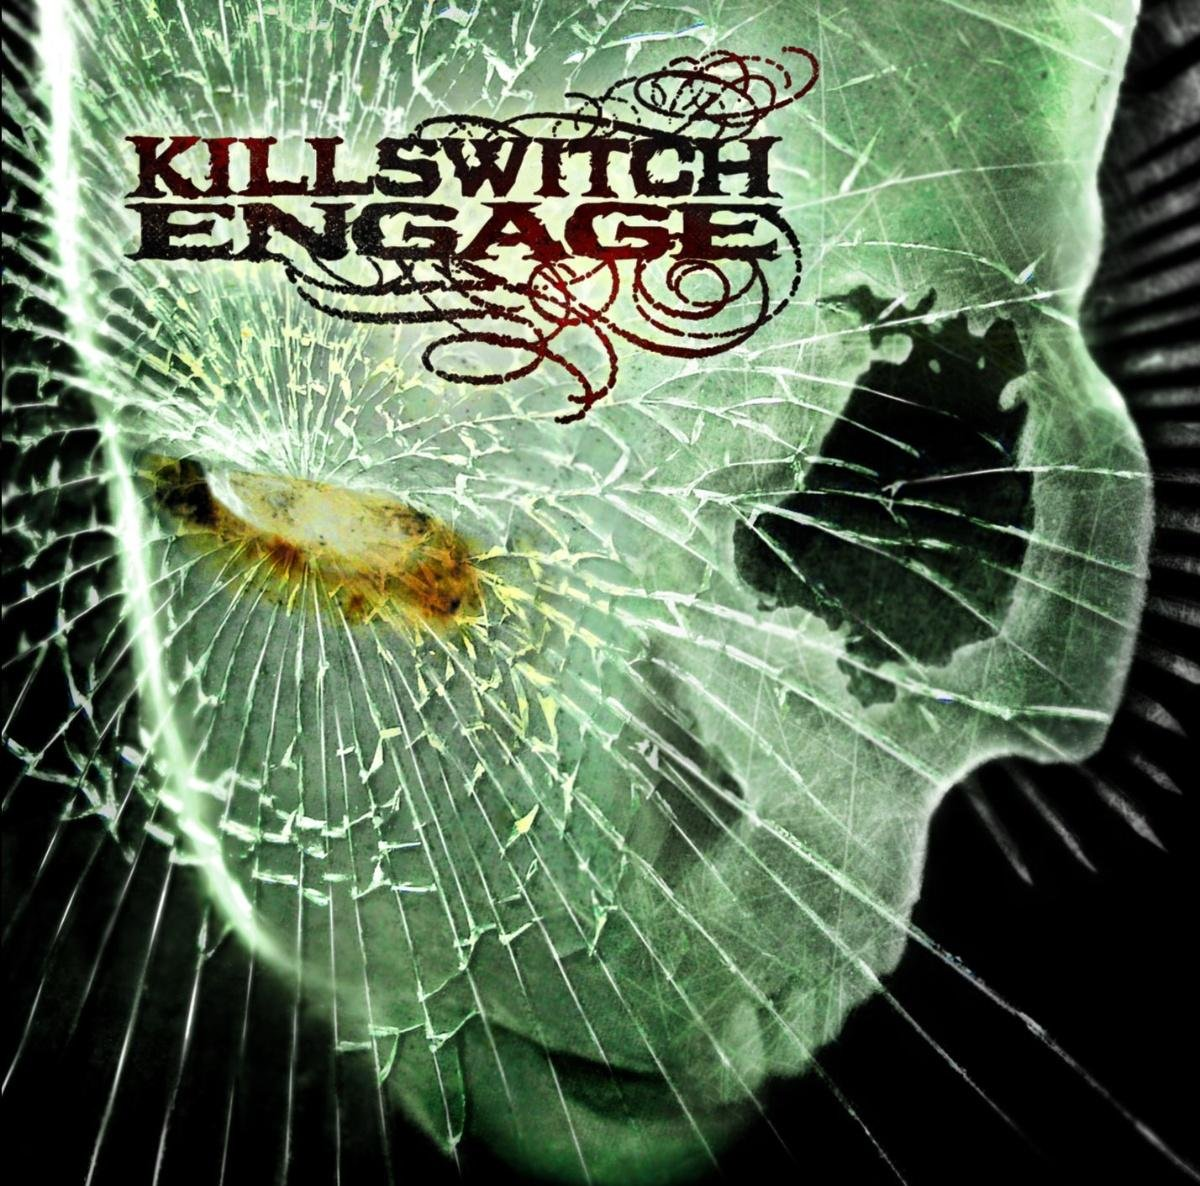 Killswitch engage killswitch engage as daylight dies amazon killswitch engage killswitch engage as daylight dies amazon music m4hsunfo